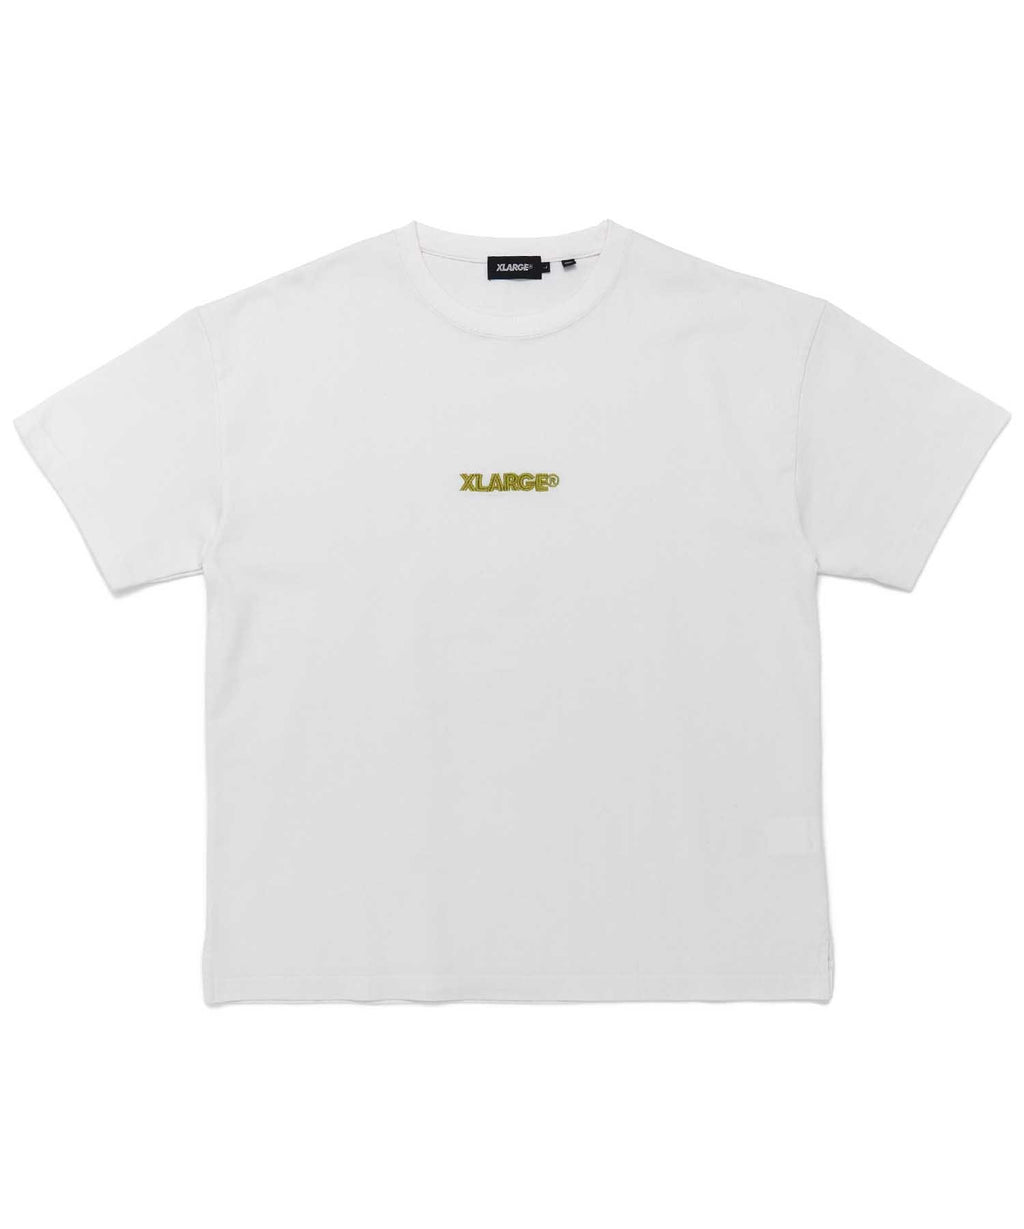 S/S TEE EMBROIDERY STANDARD LOGO 2 - WHITE